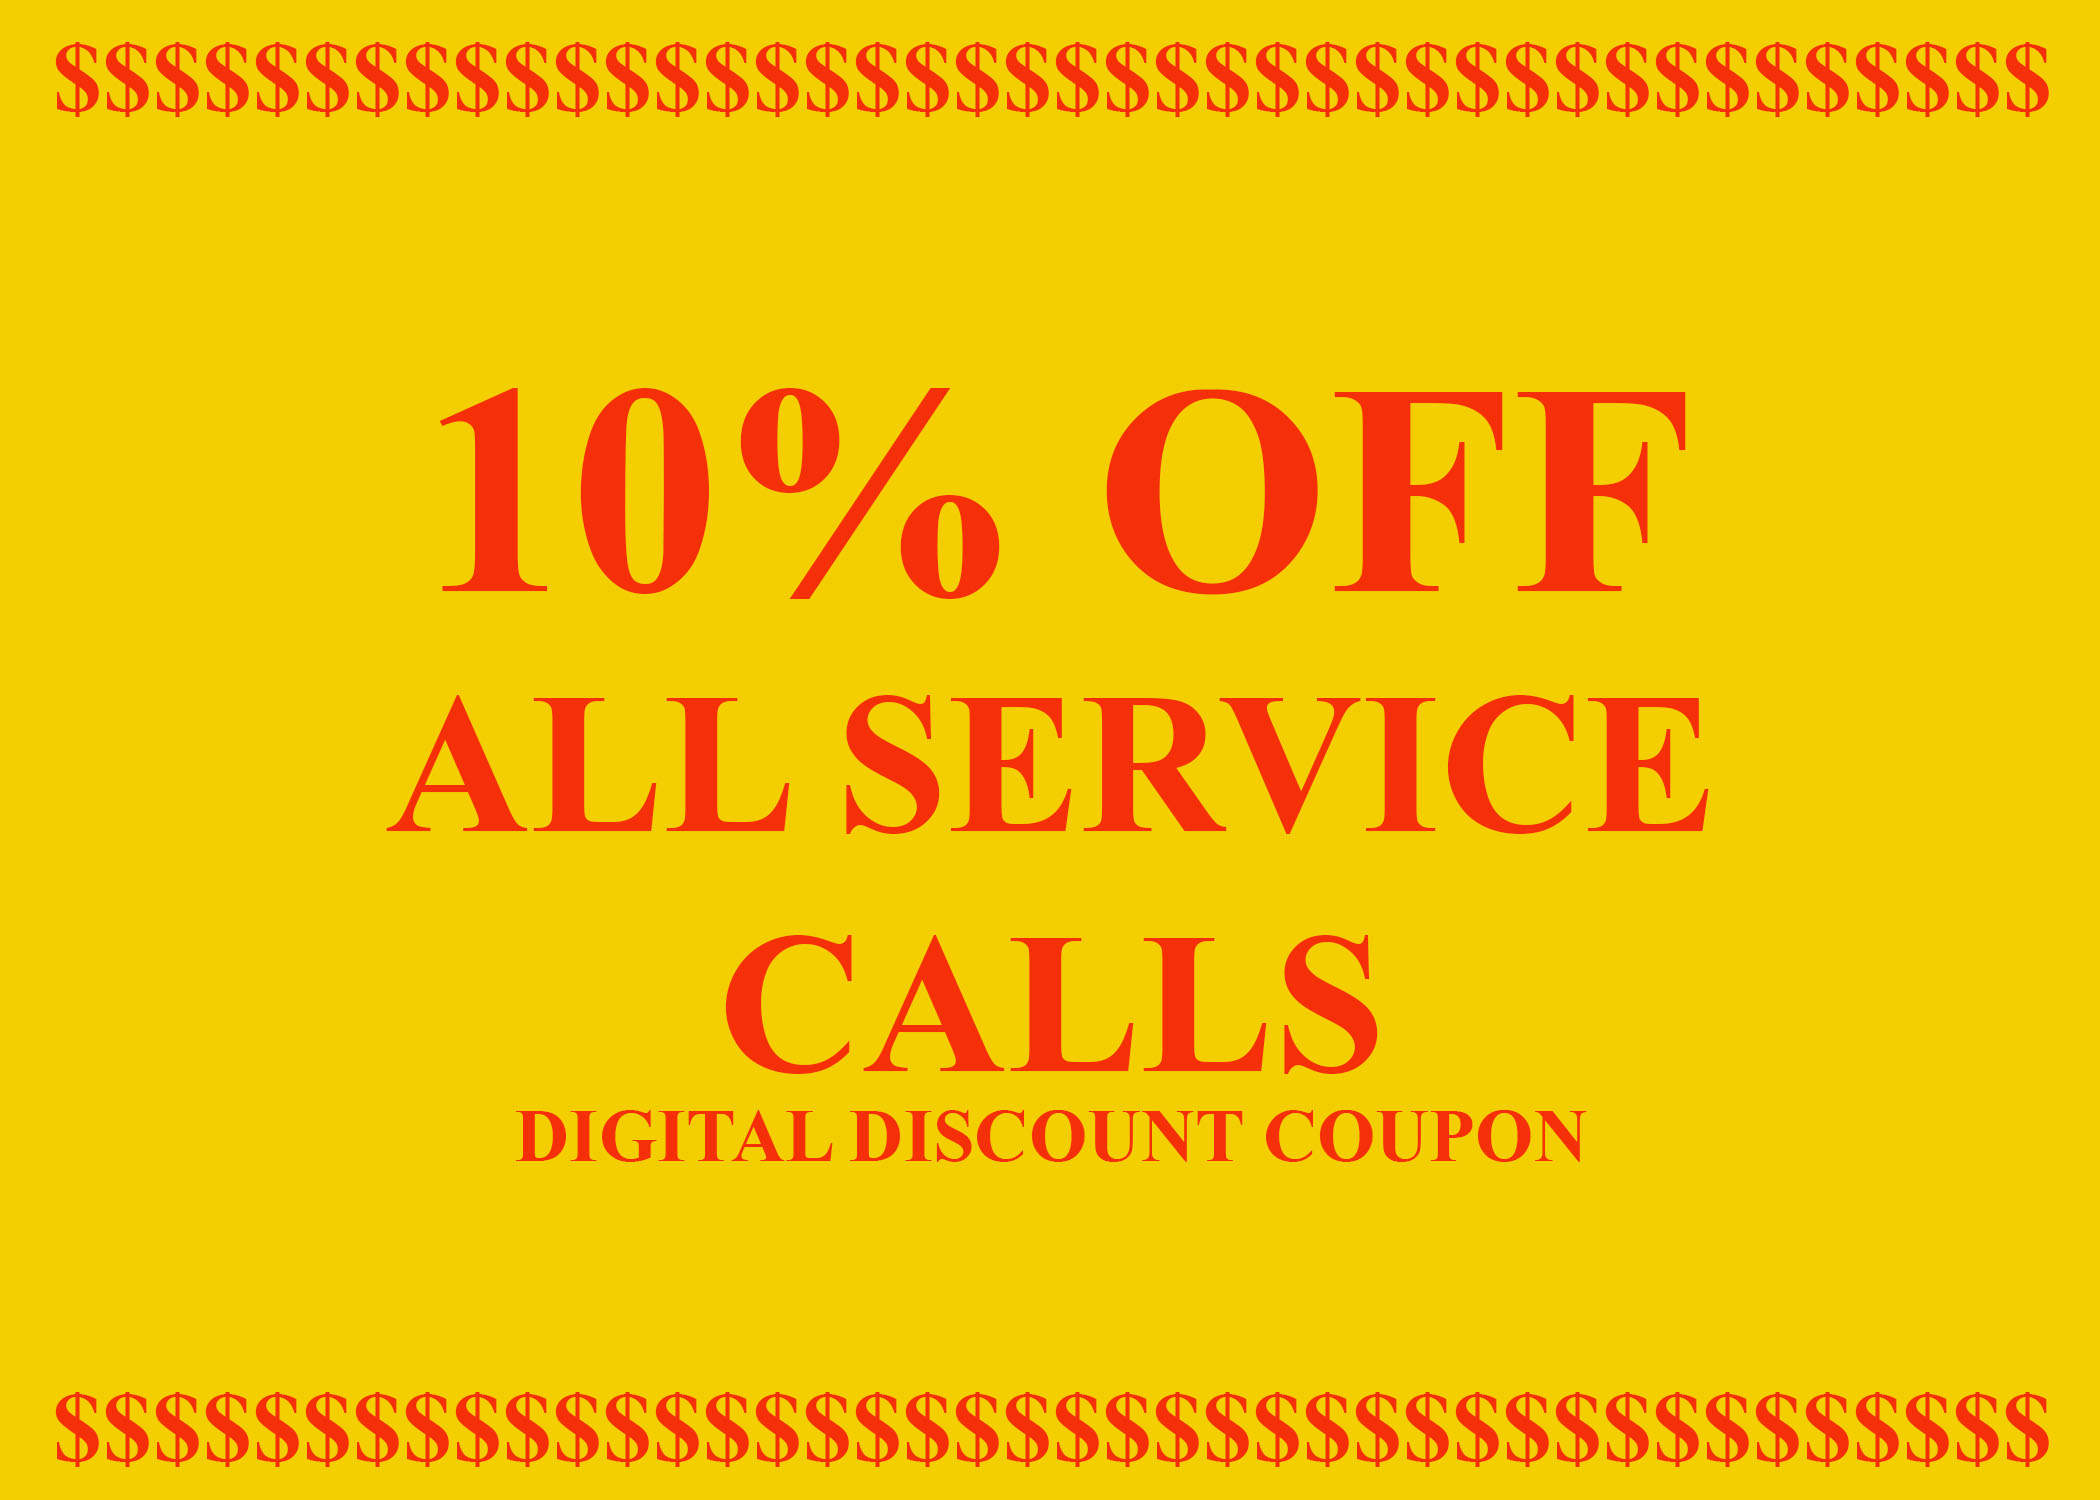 10% OFF ALL SERVICE CALLS - JUST MENTION ADD WHEN SCHEDULING SERVICE CALL